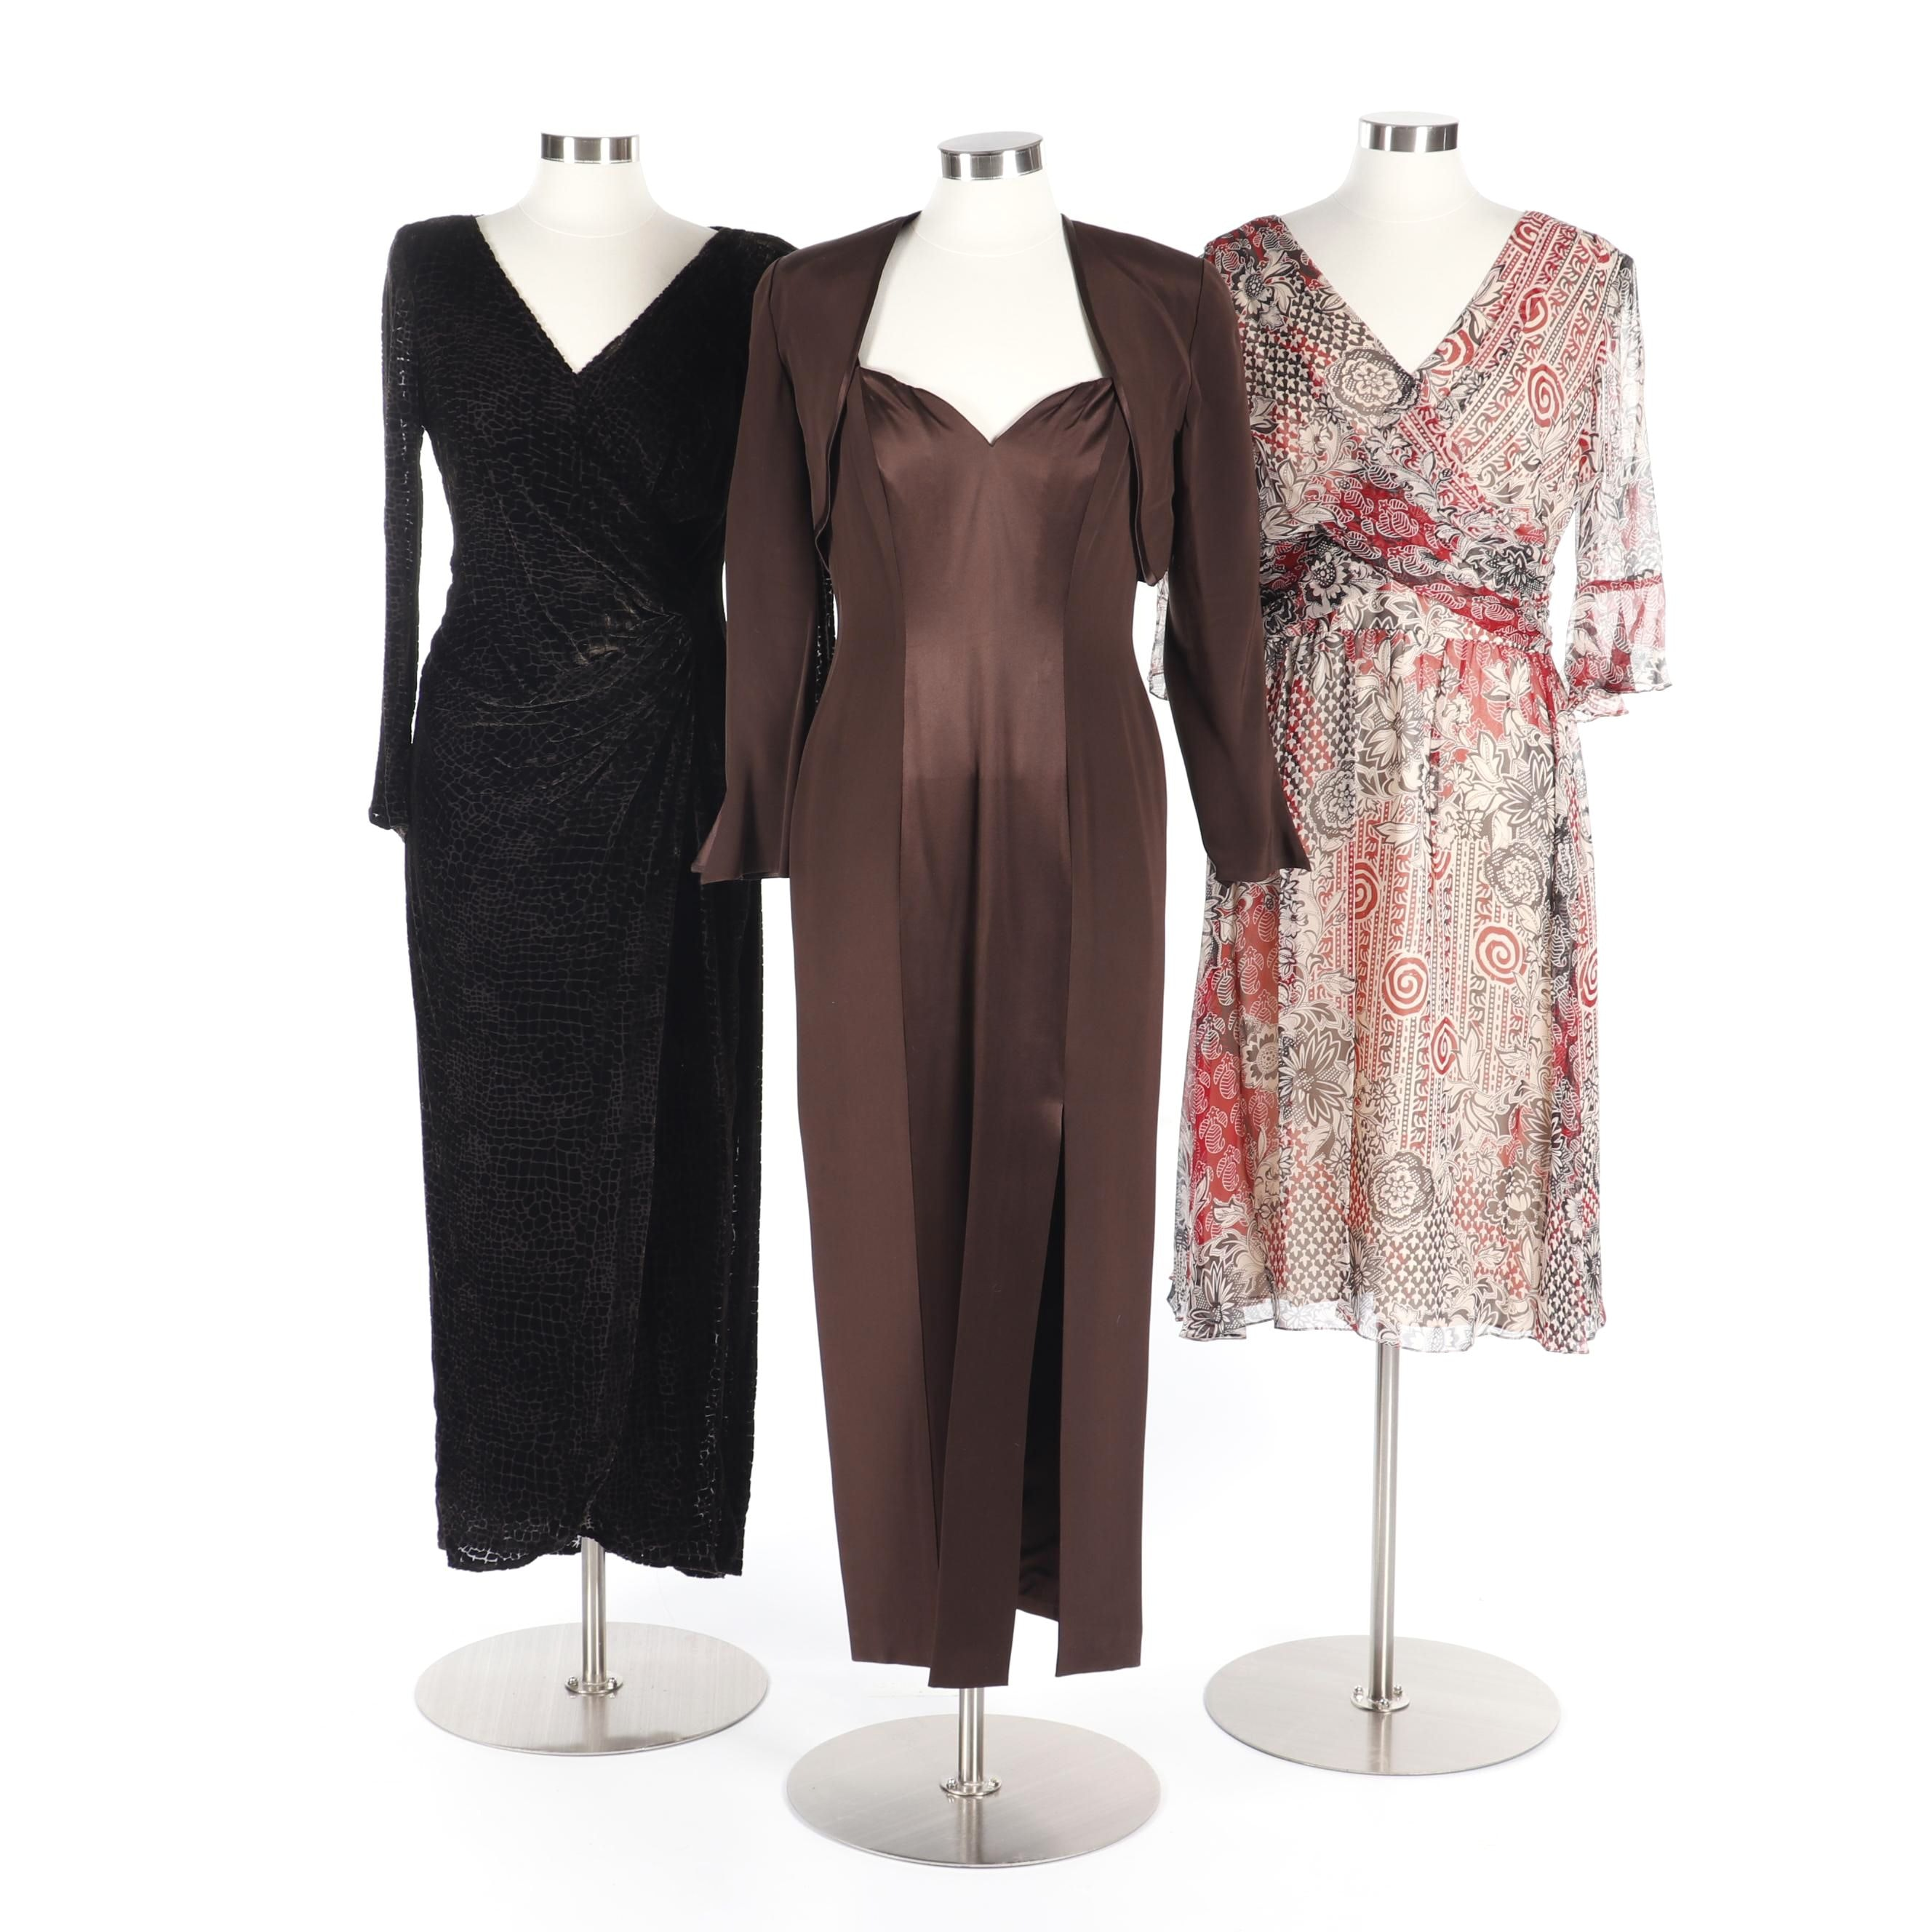 Dresses Including Tadasi Devoré and Fyodor Two-Piece Cocktail and Muse Casual